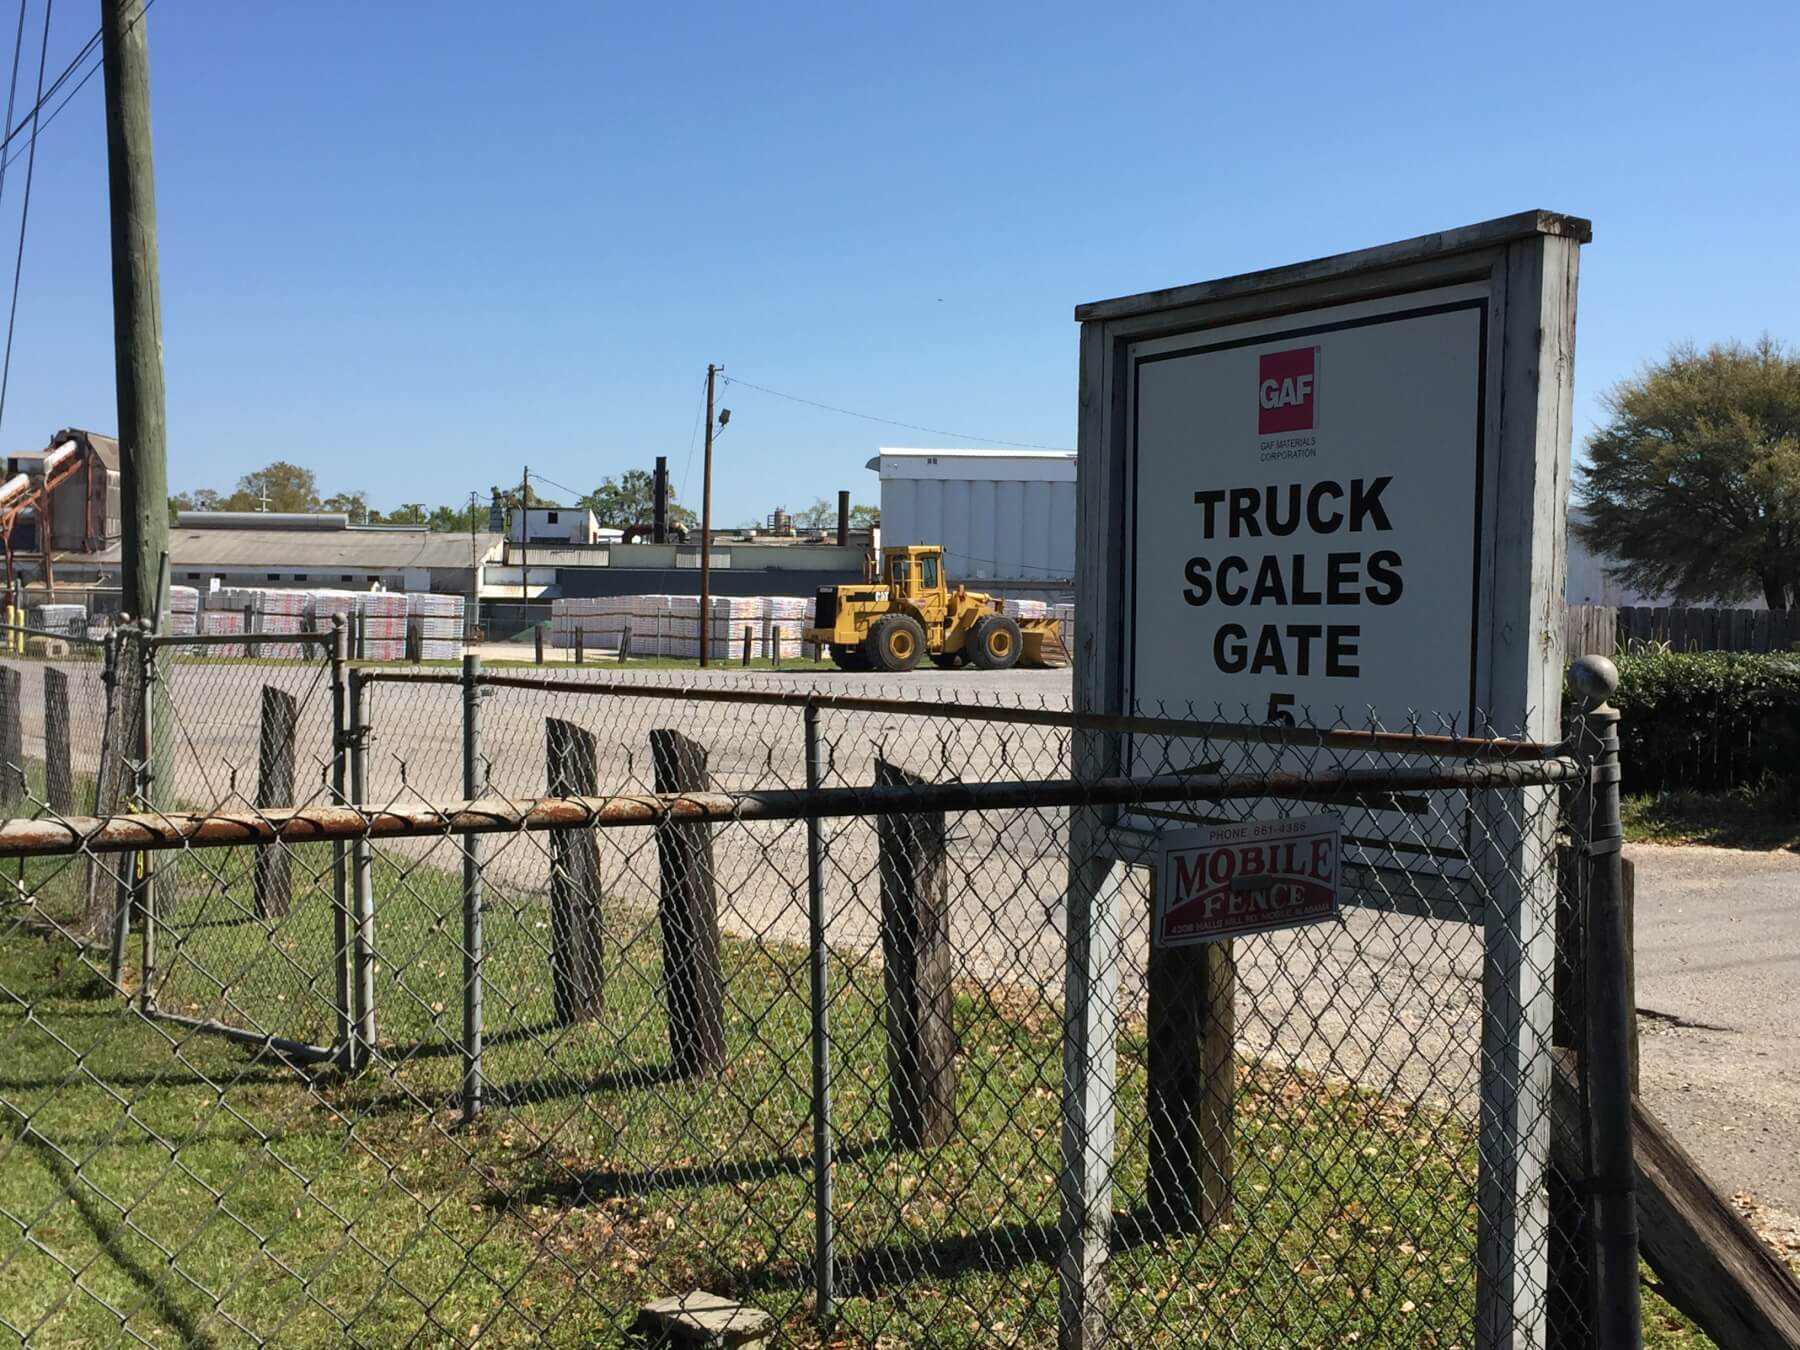 Gaf To Shut Down Midtown Mobile Plant Source Of Odor